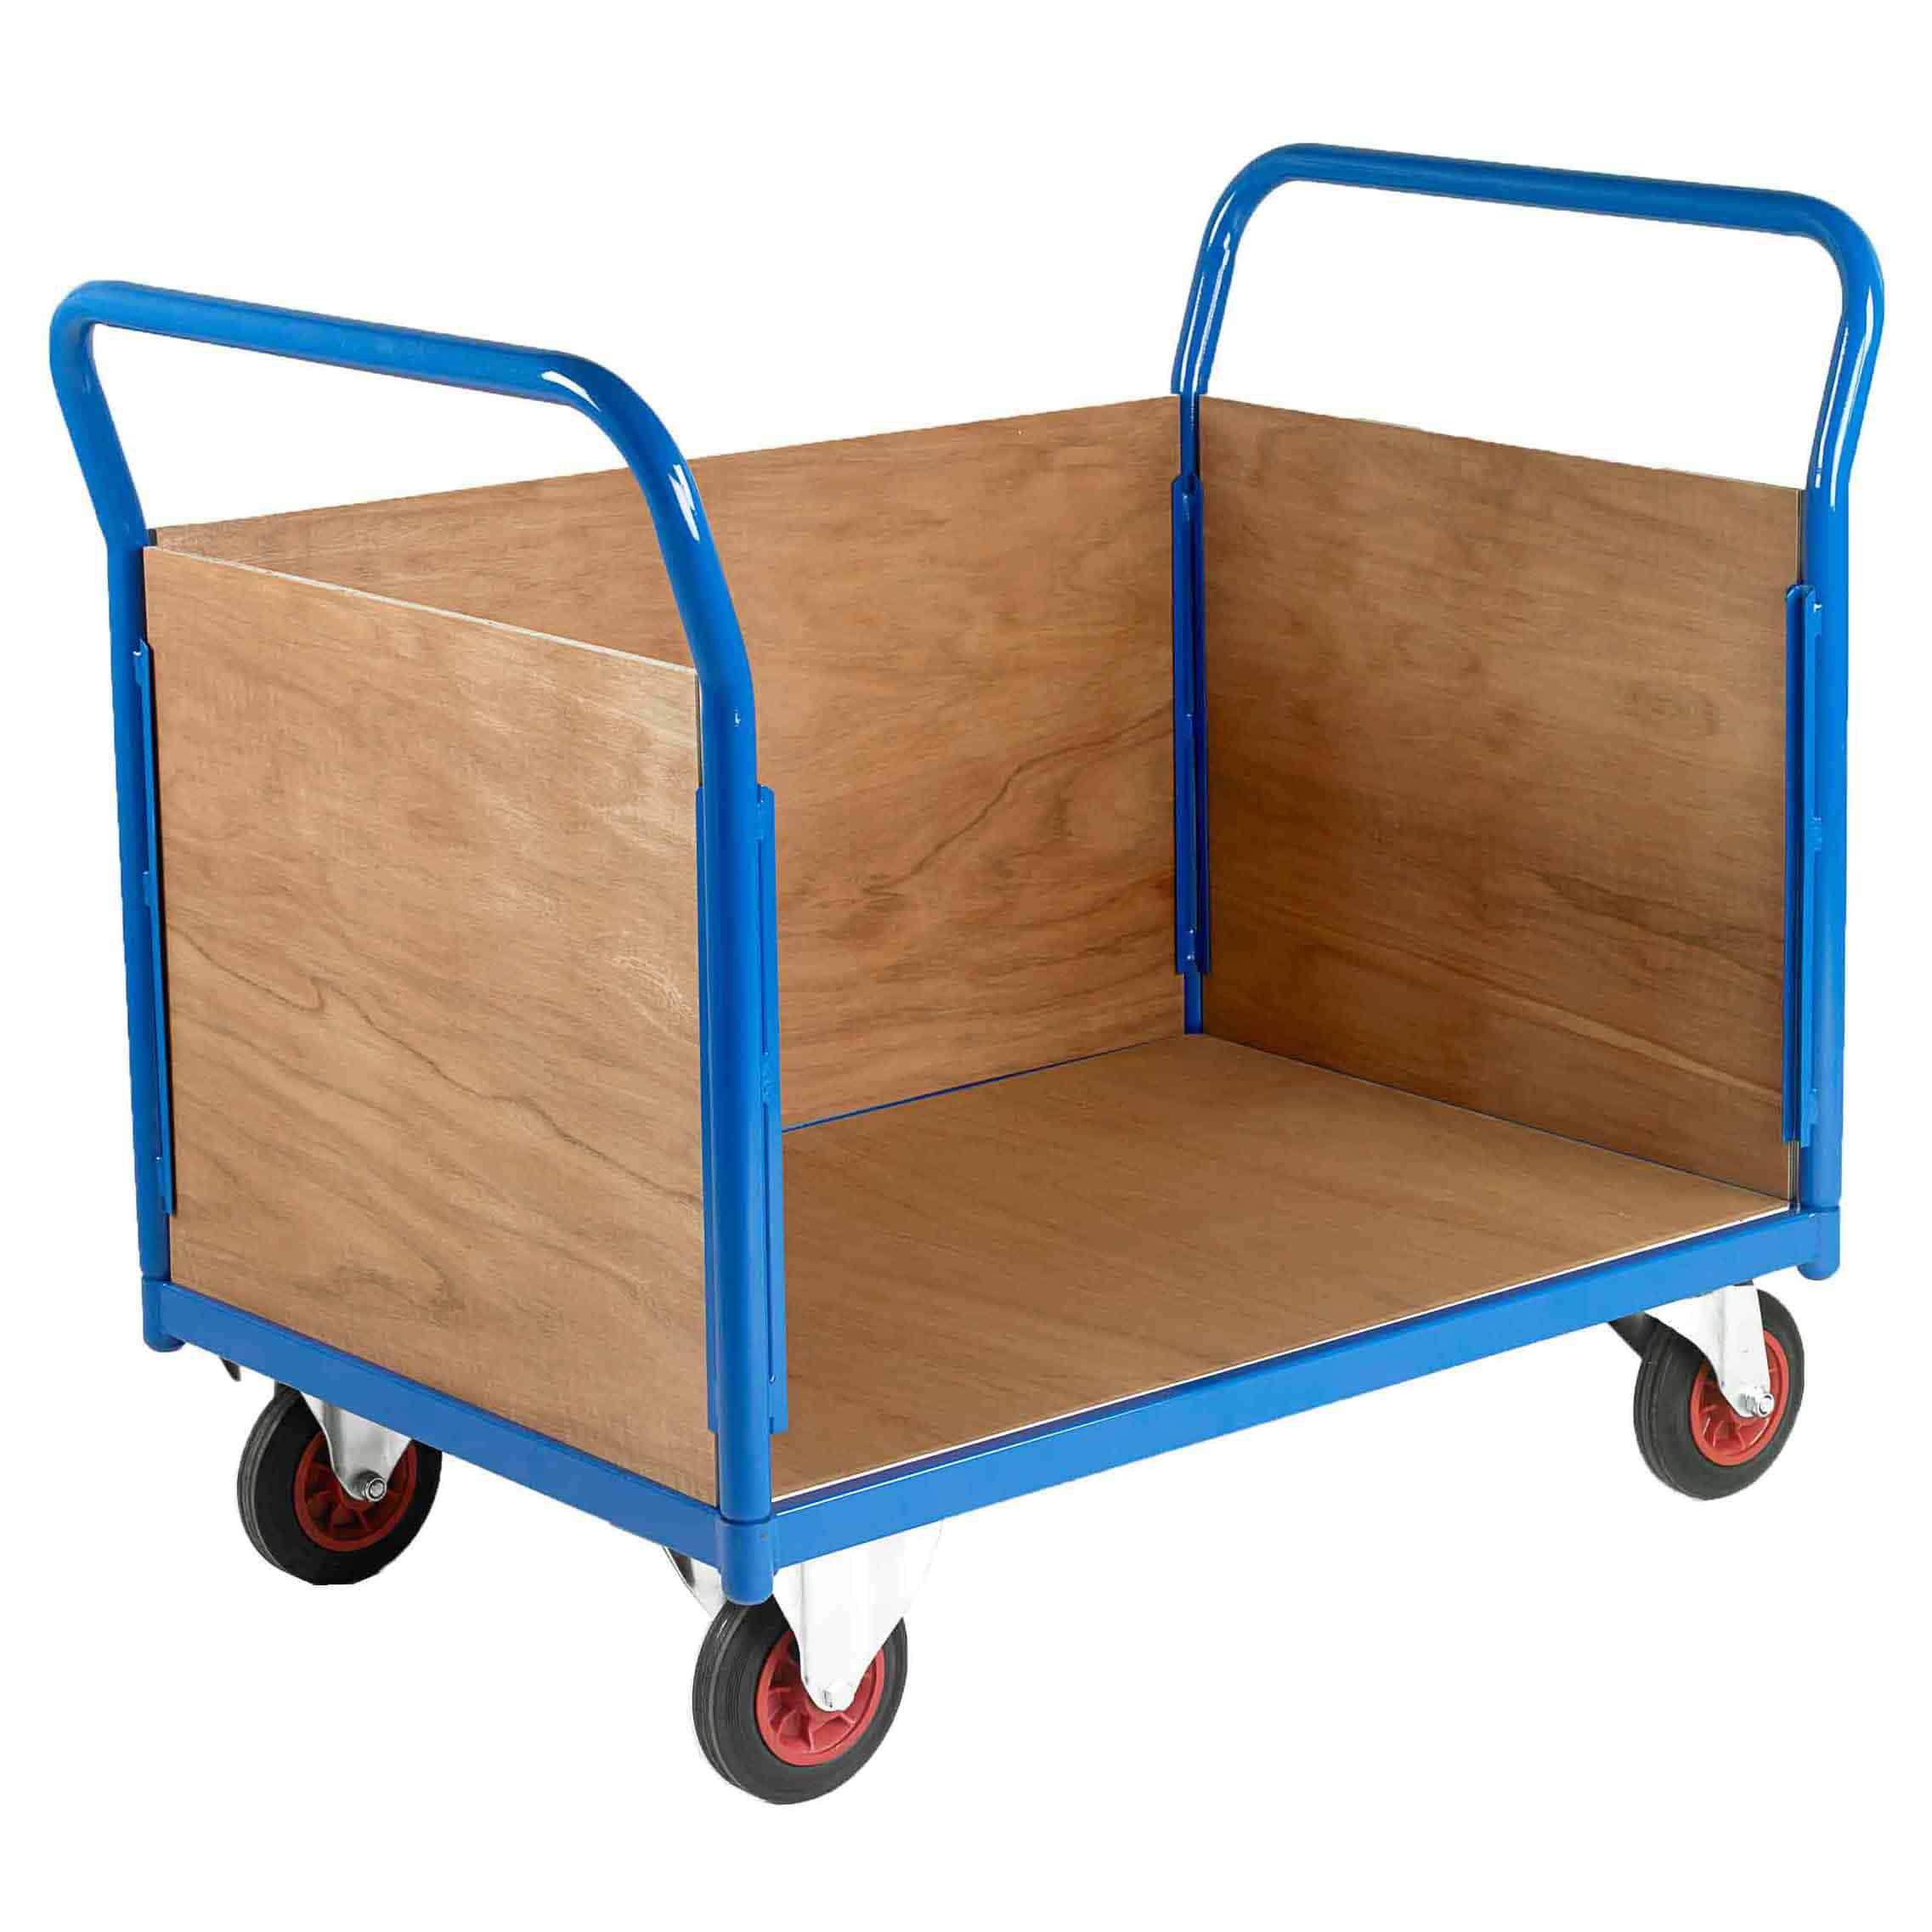 500 Series Timber Panel Platform Trucks